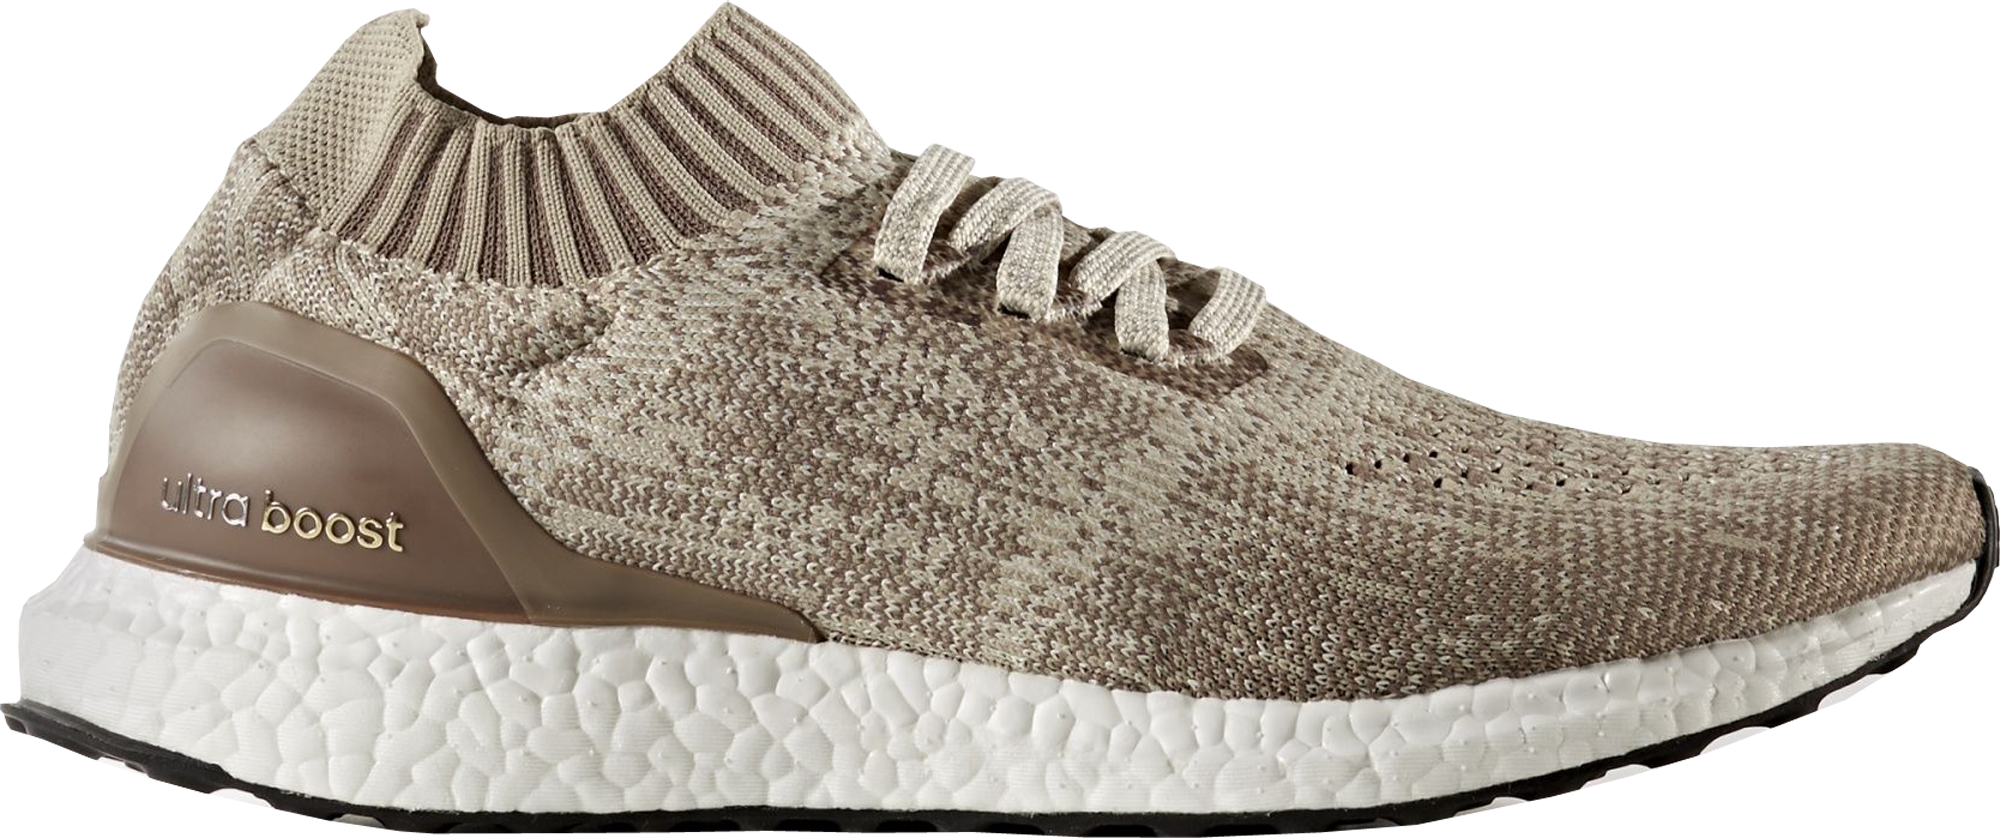 adidas Ultra Boost Uncaged Khaki Brown